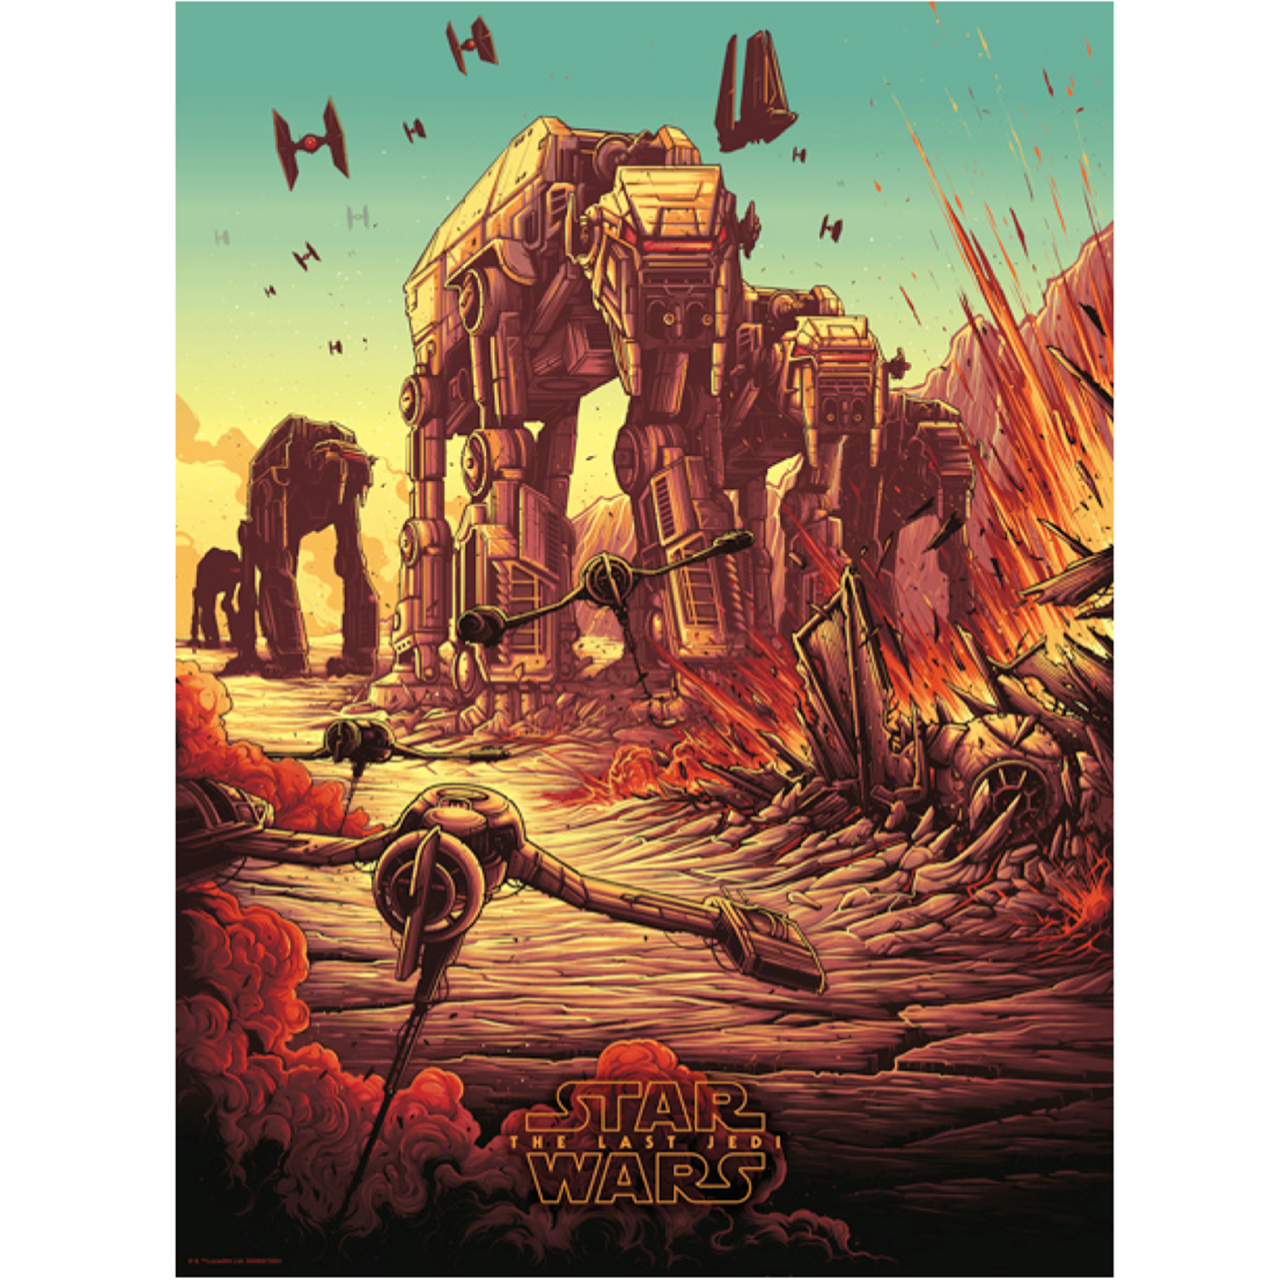 Star Wars: Spark That Will Ignite The Fire: Limited Edition Art Print - 1